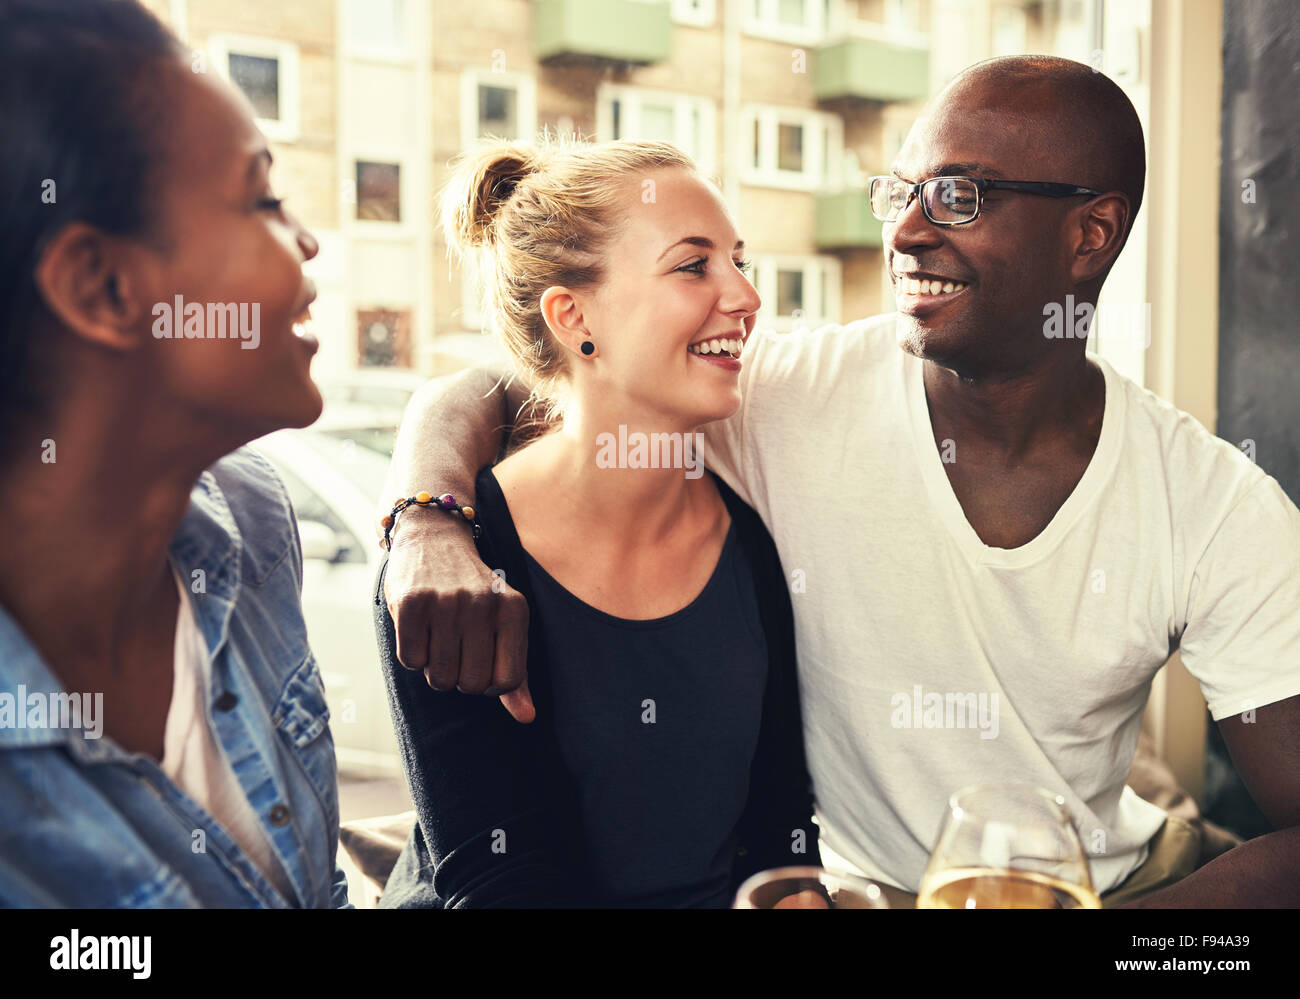 Multi ethnic couple smiling at each other - Stock Image